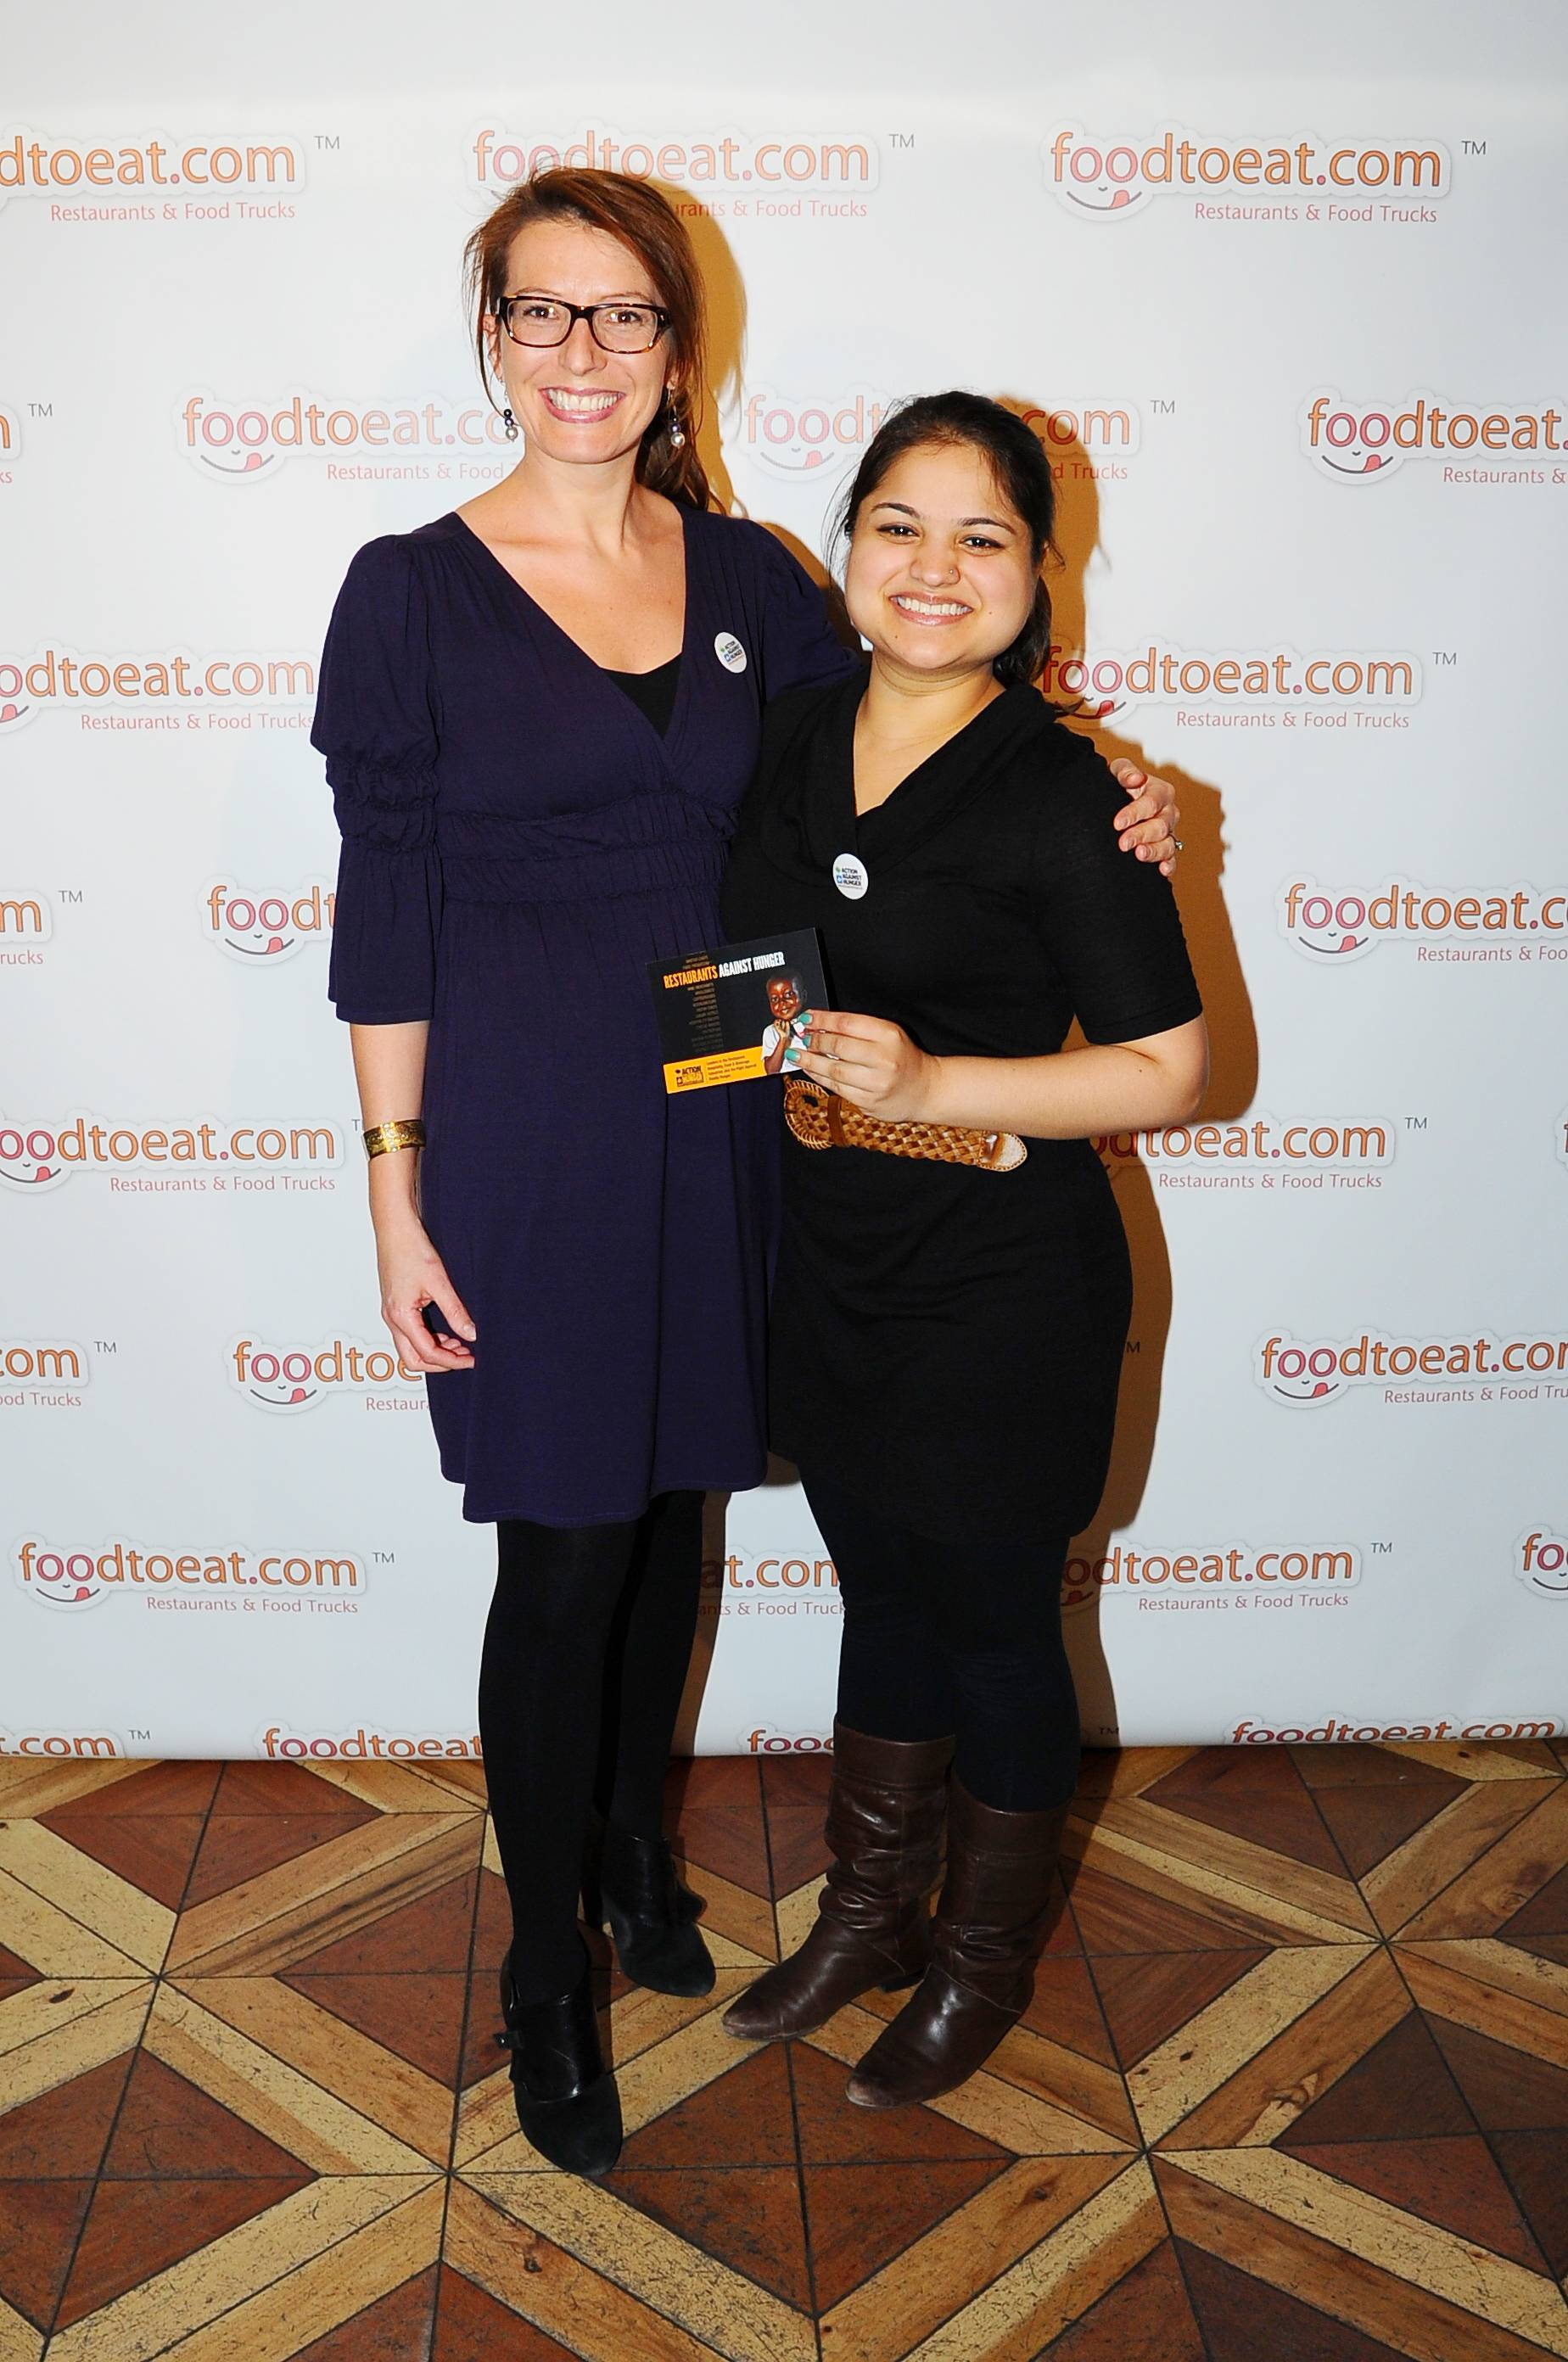 Elaine Ryan and Radhika Shah from Action Against Hunger